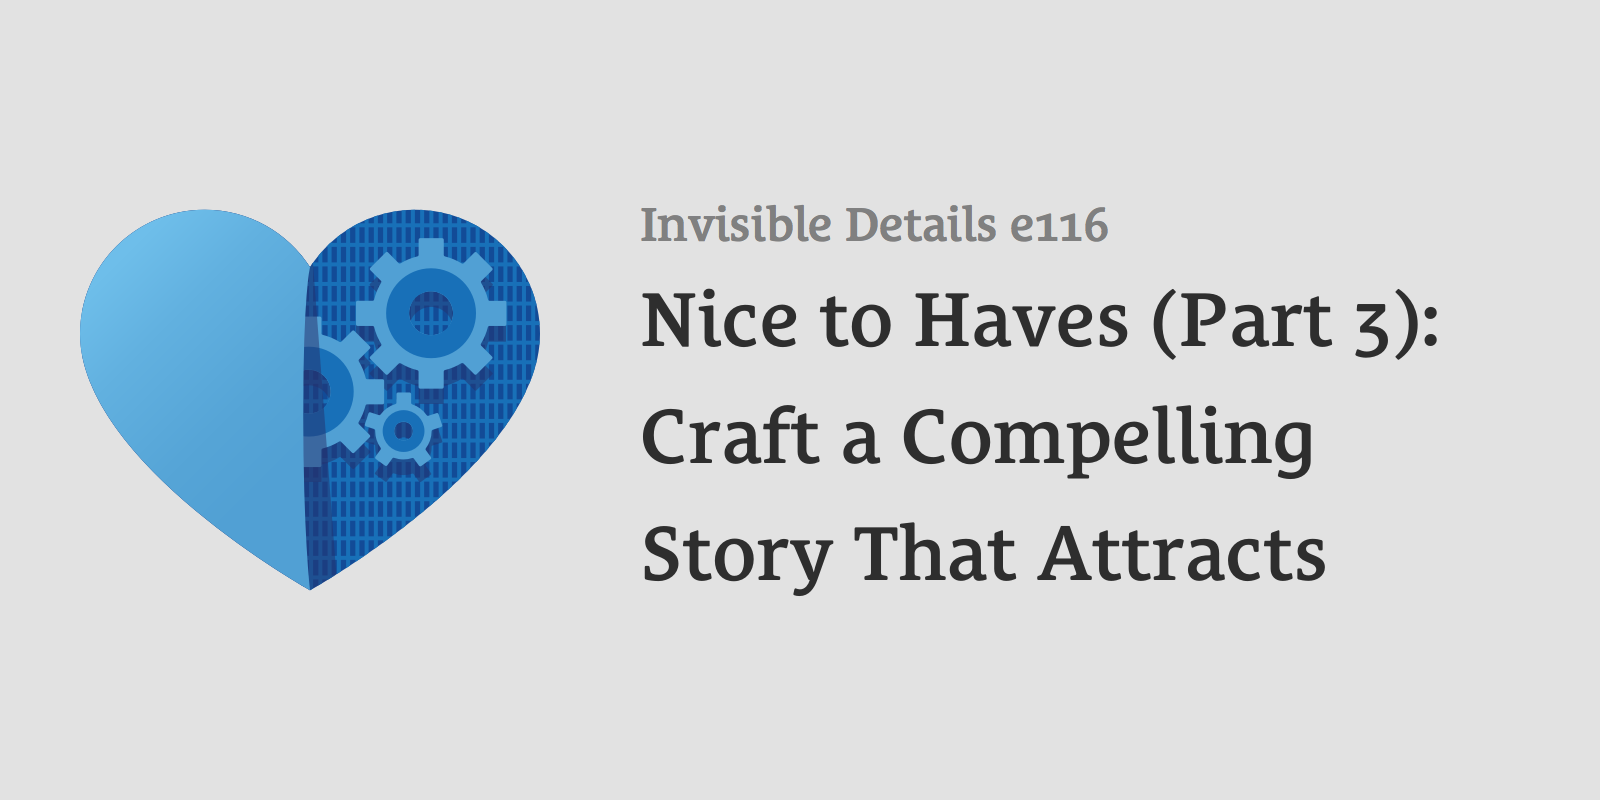 Nice to Haves (Part 3): Craft a Compelling Story That Attracts